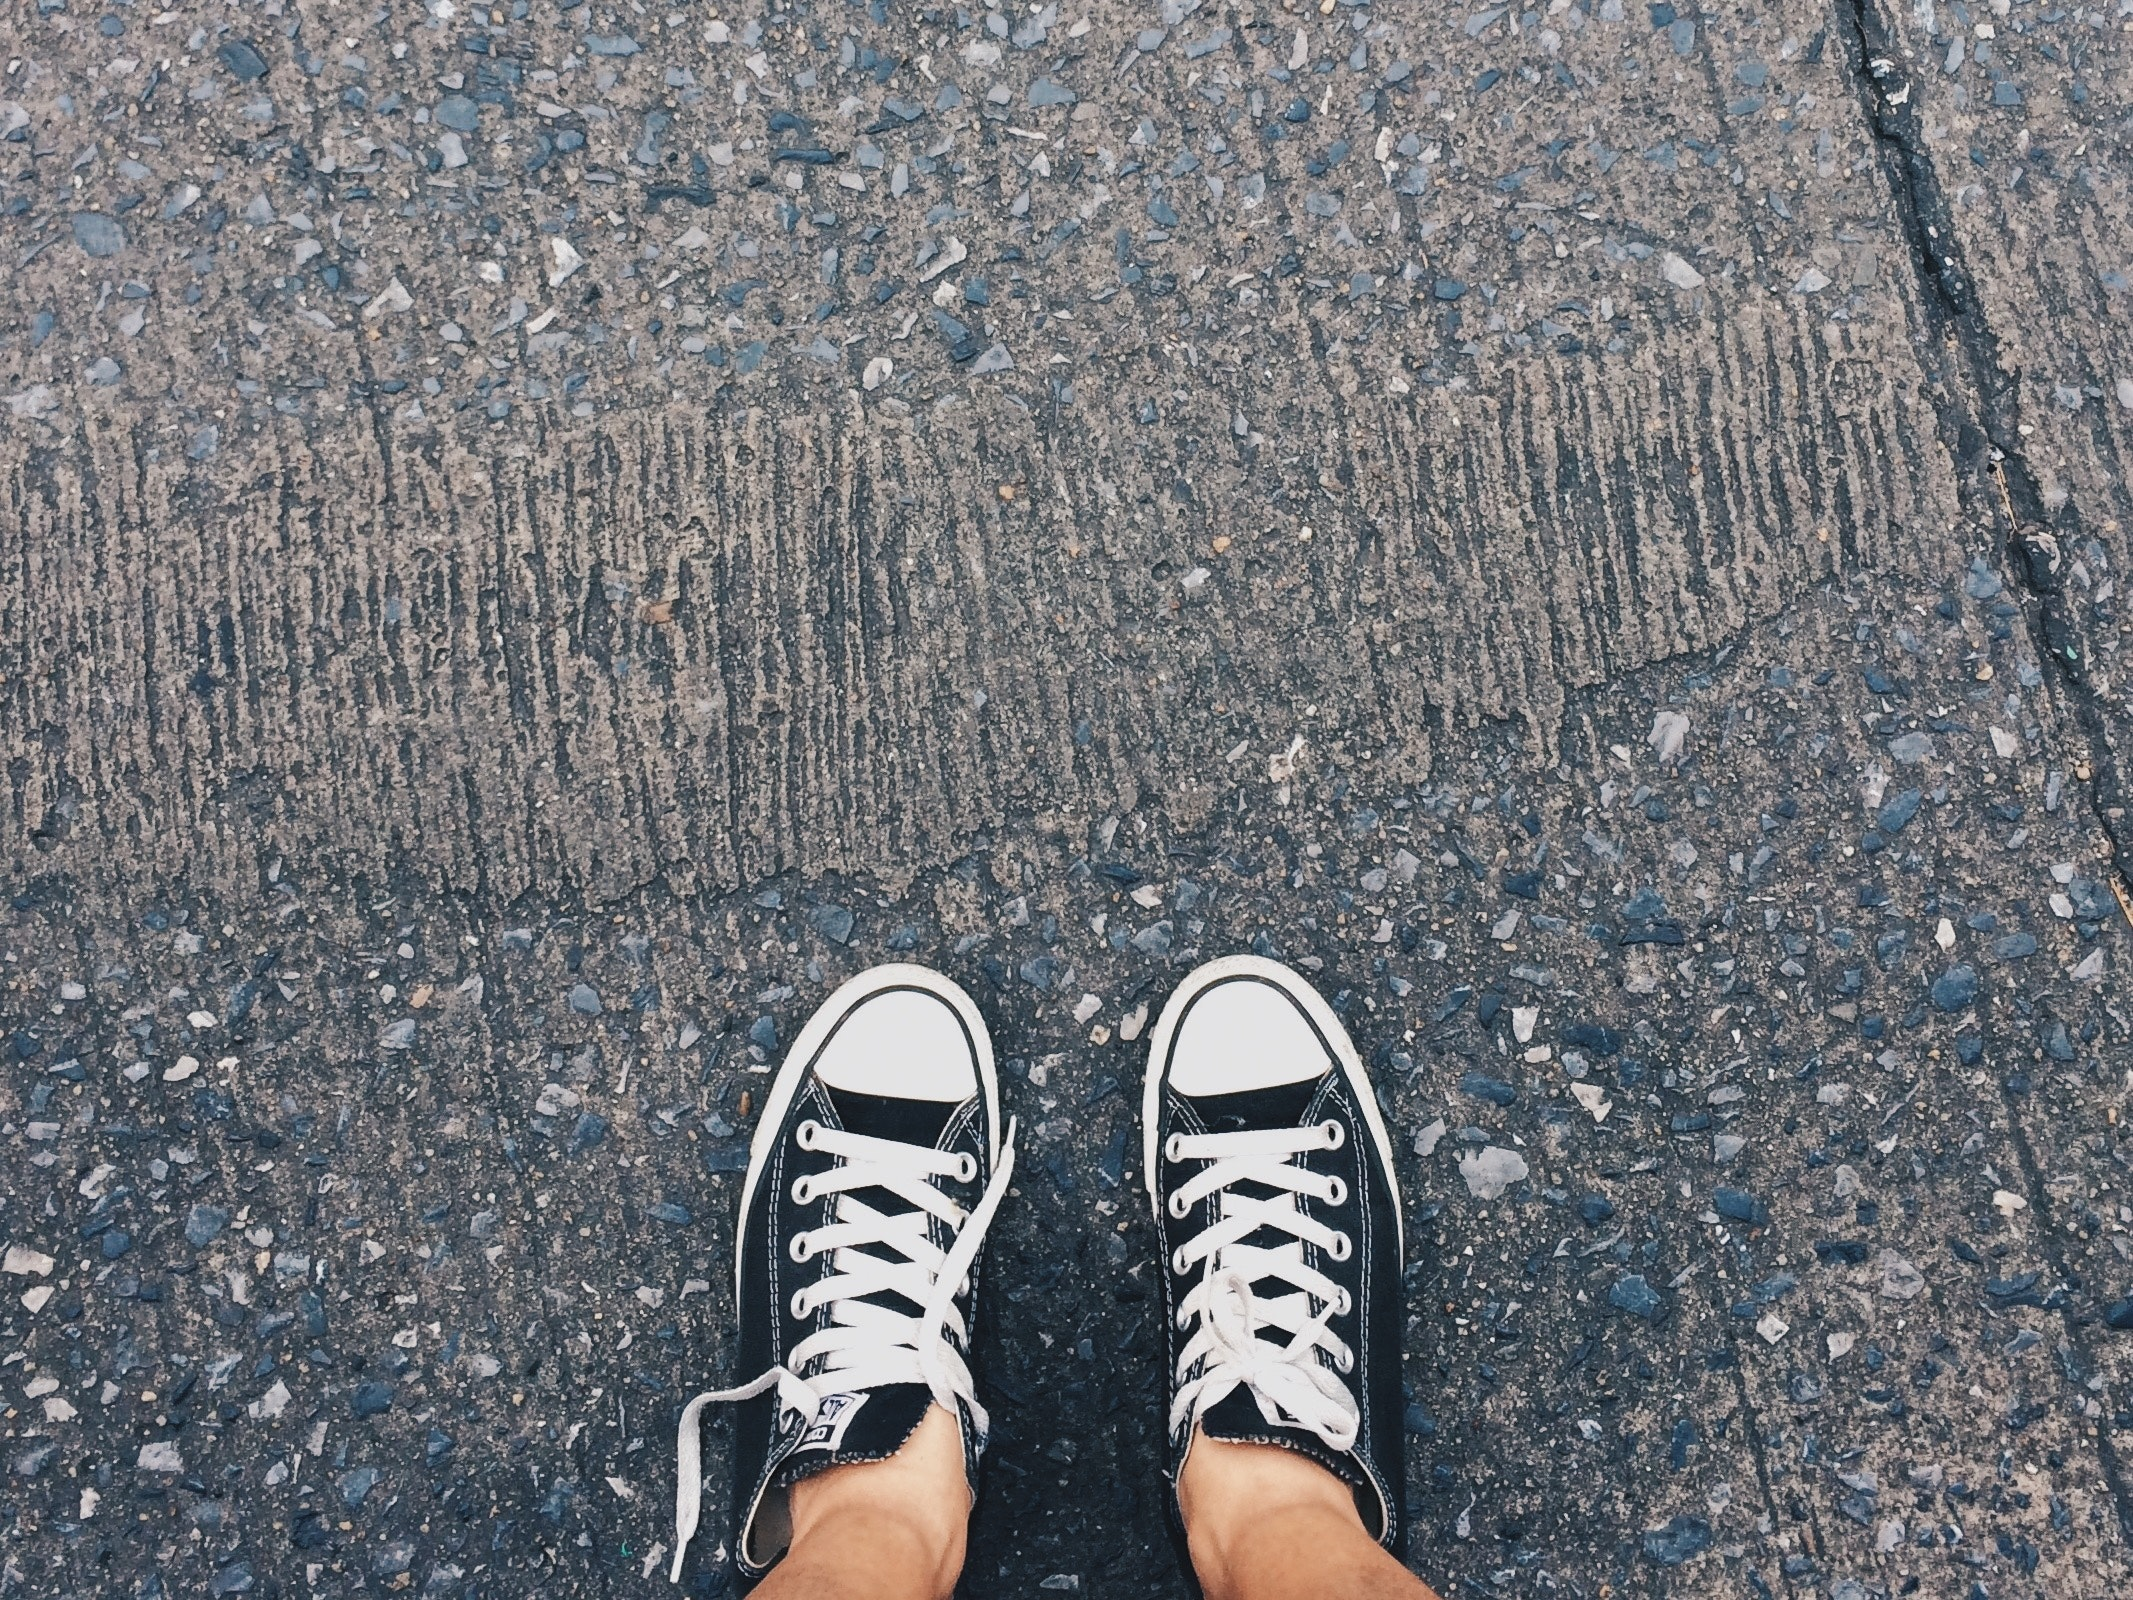 2cb3f9fe388 Person Wearing Pair of Black-and-white Converse All Star Low ...